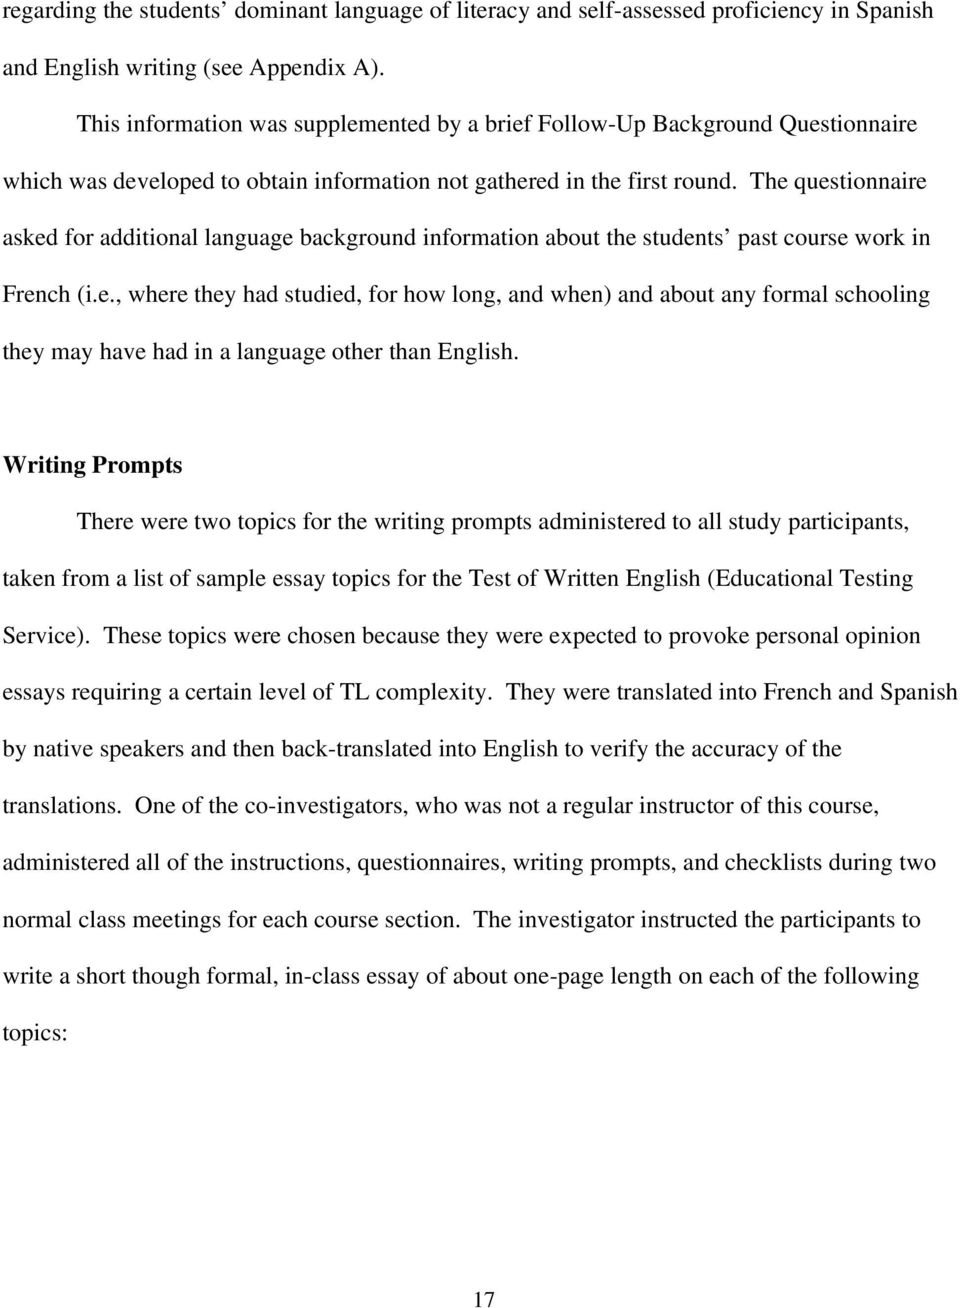 10 Fantastic Ideas For Student Council Speeches essay for student council top best essay ghostwriter service for